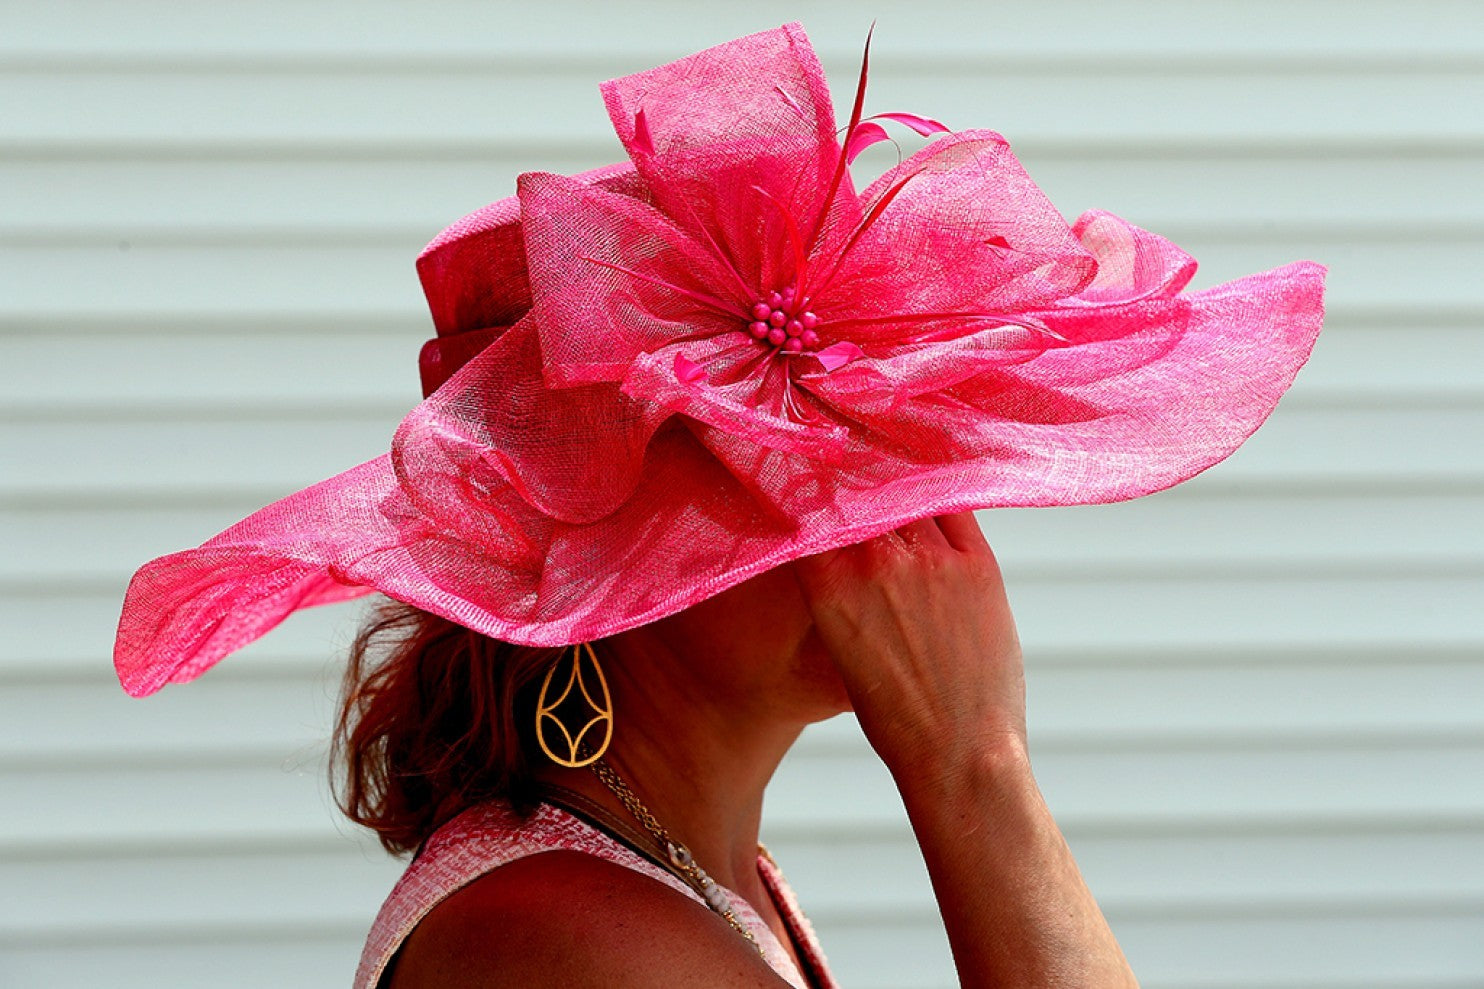 A woman wearing a bright pink hat with a large bow